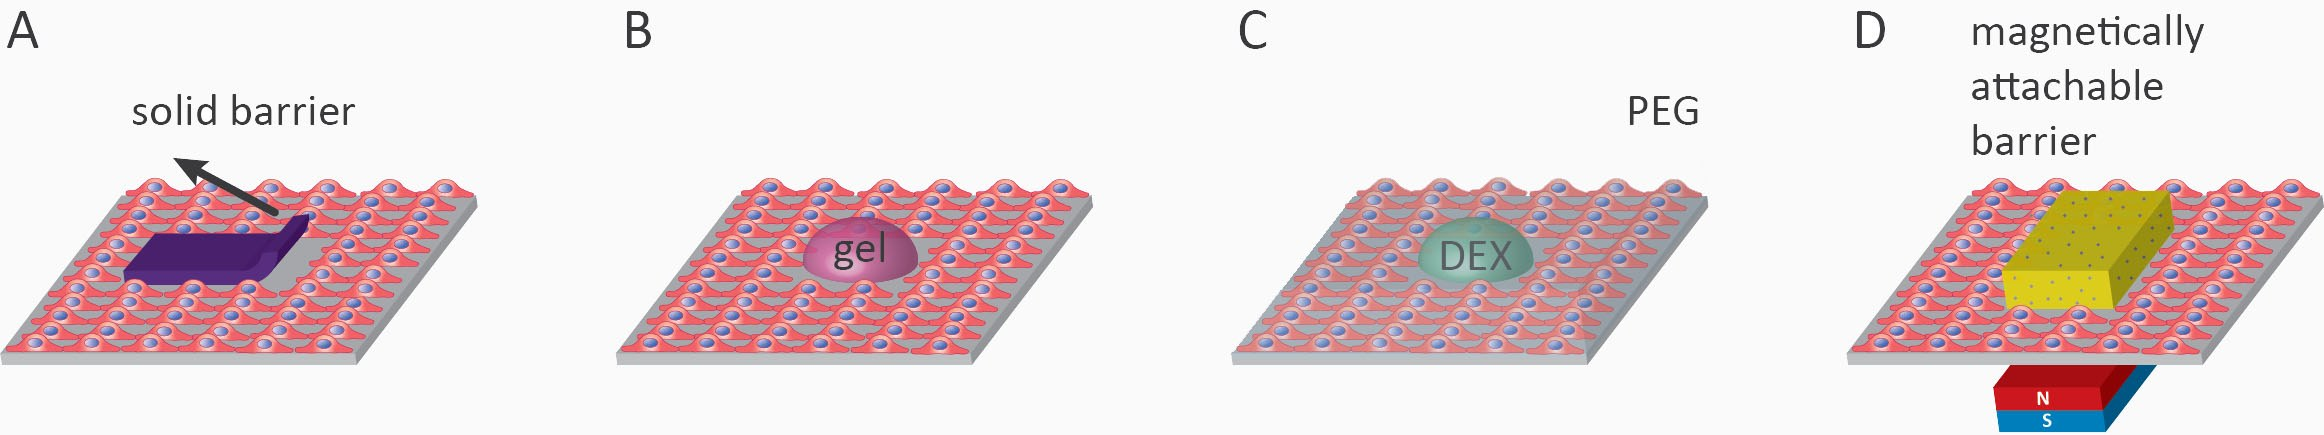 wound healing assay; Overview of cell removal assays. A) scratch wounding, B) stamp wounding, C) PDMS barrier removal, D) laser ablation, E) electroporation, F) chemical wounding in microfluidic chip and G) Vacuum based wounding.